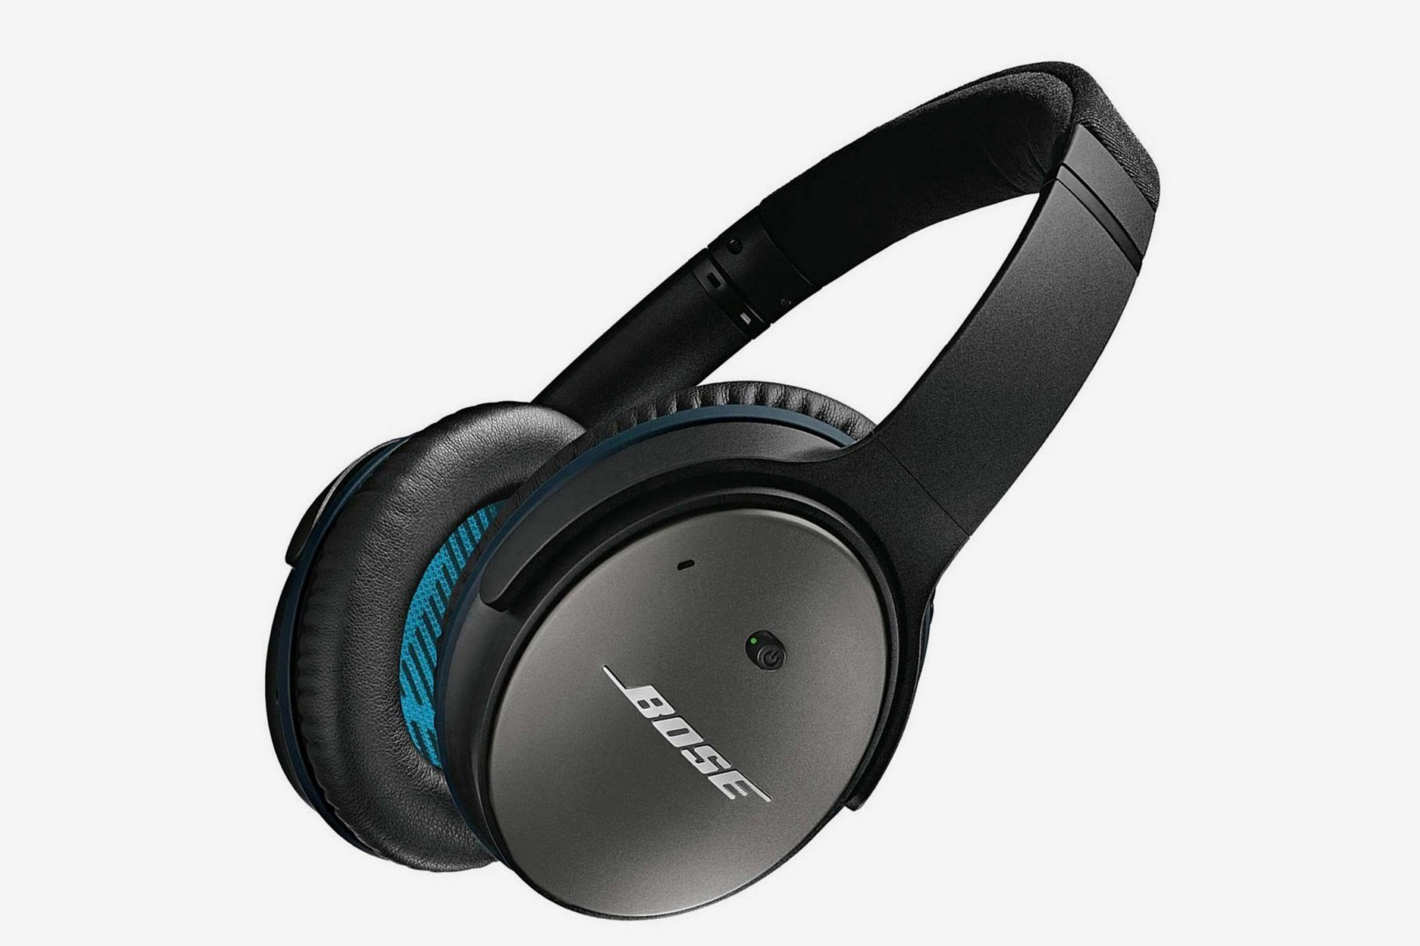 Bose QuietComfort 25 Acoustic Noise Canceling Headphones